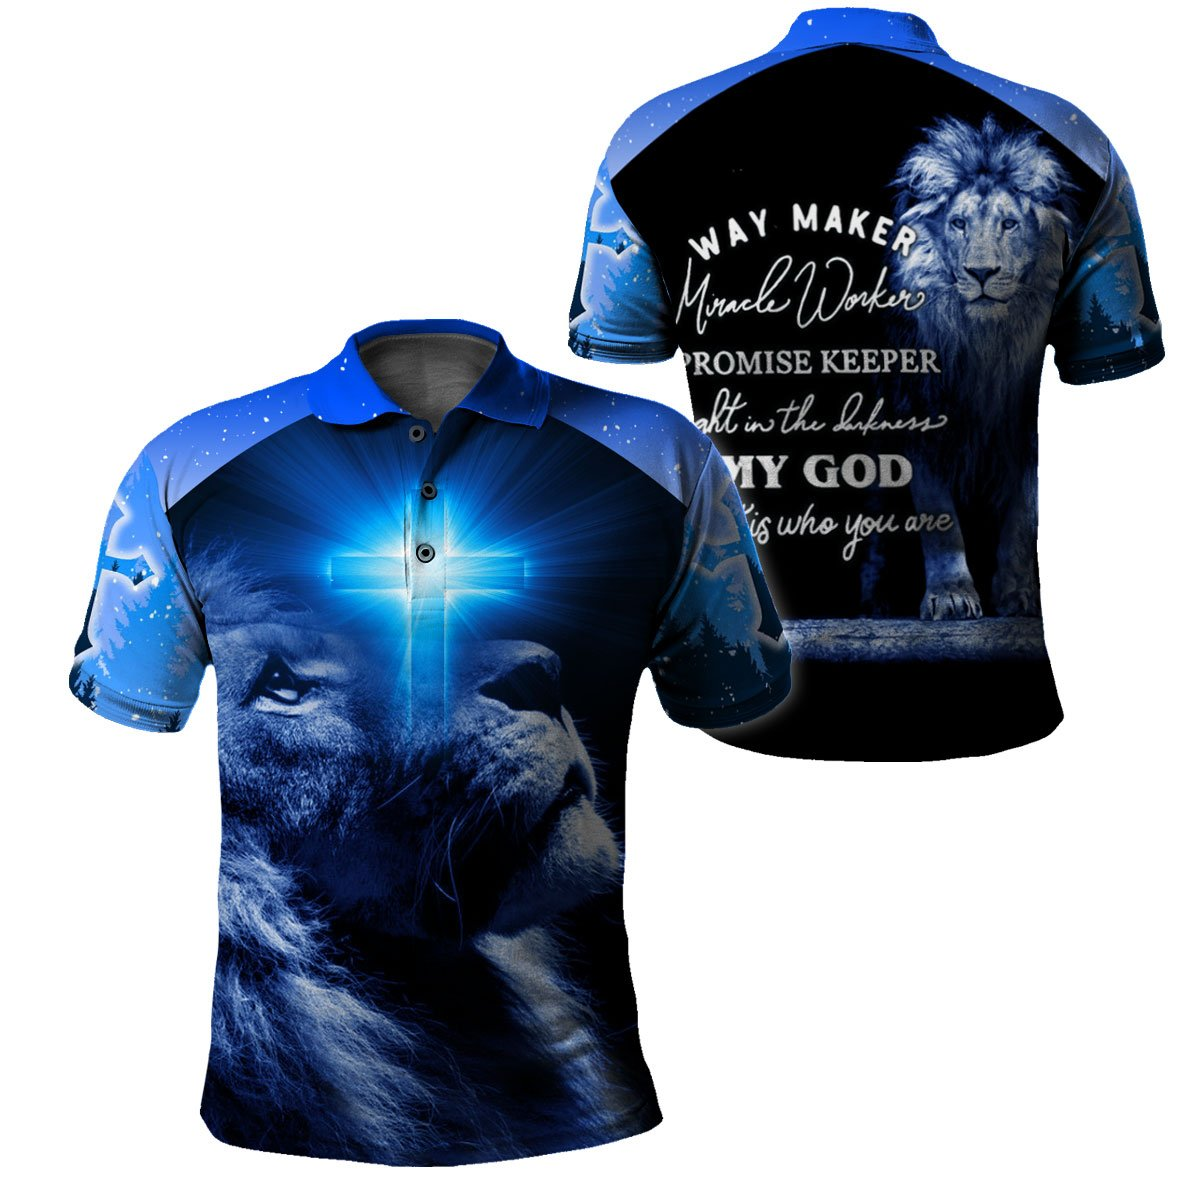 3D Christian Hoodie, Polo, T-shirt- Way Maker Miracle Worker - GnWarriors Clothing